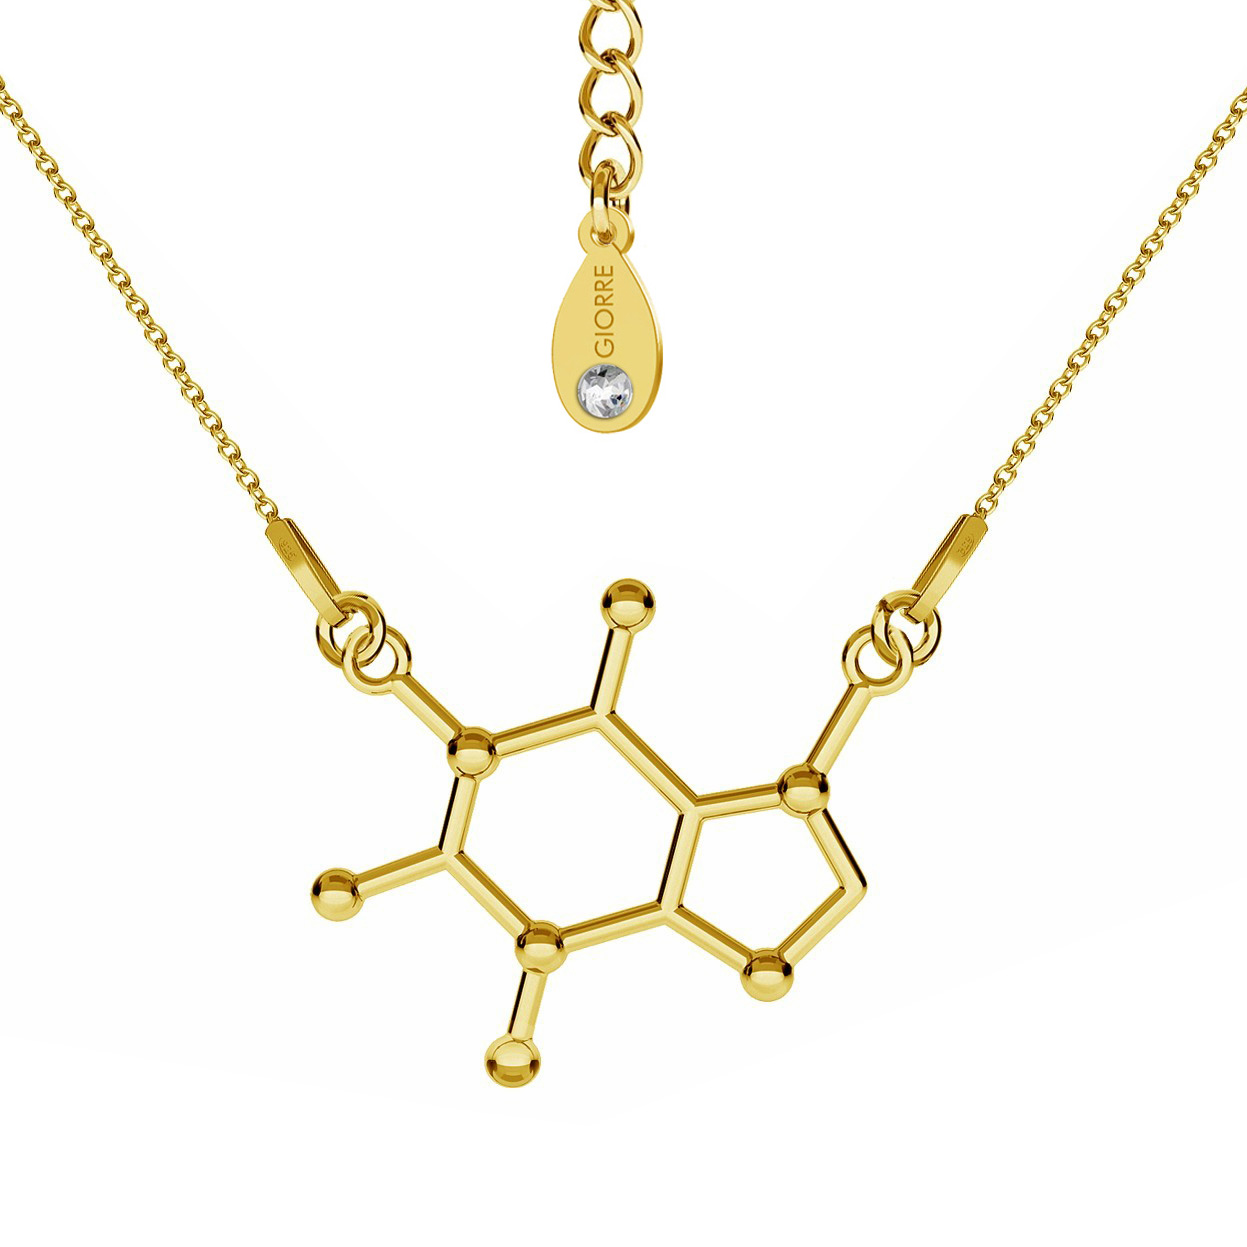 CAFFEINE NECKLACE CHEMICAL FORMULA STERLING SILVER - BASIC